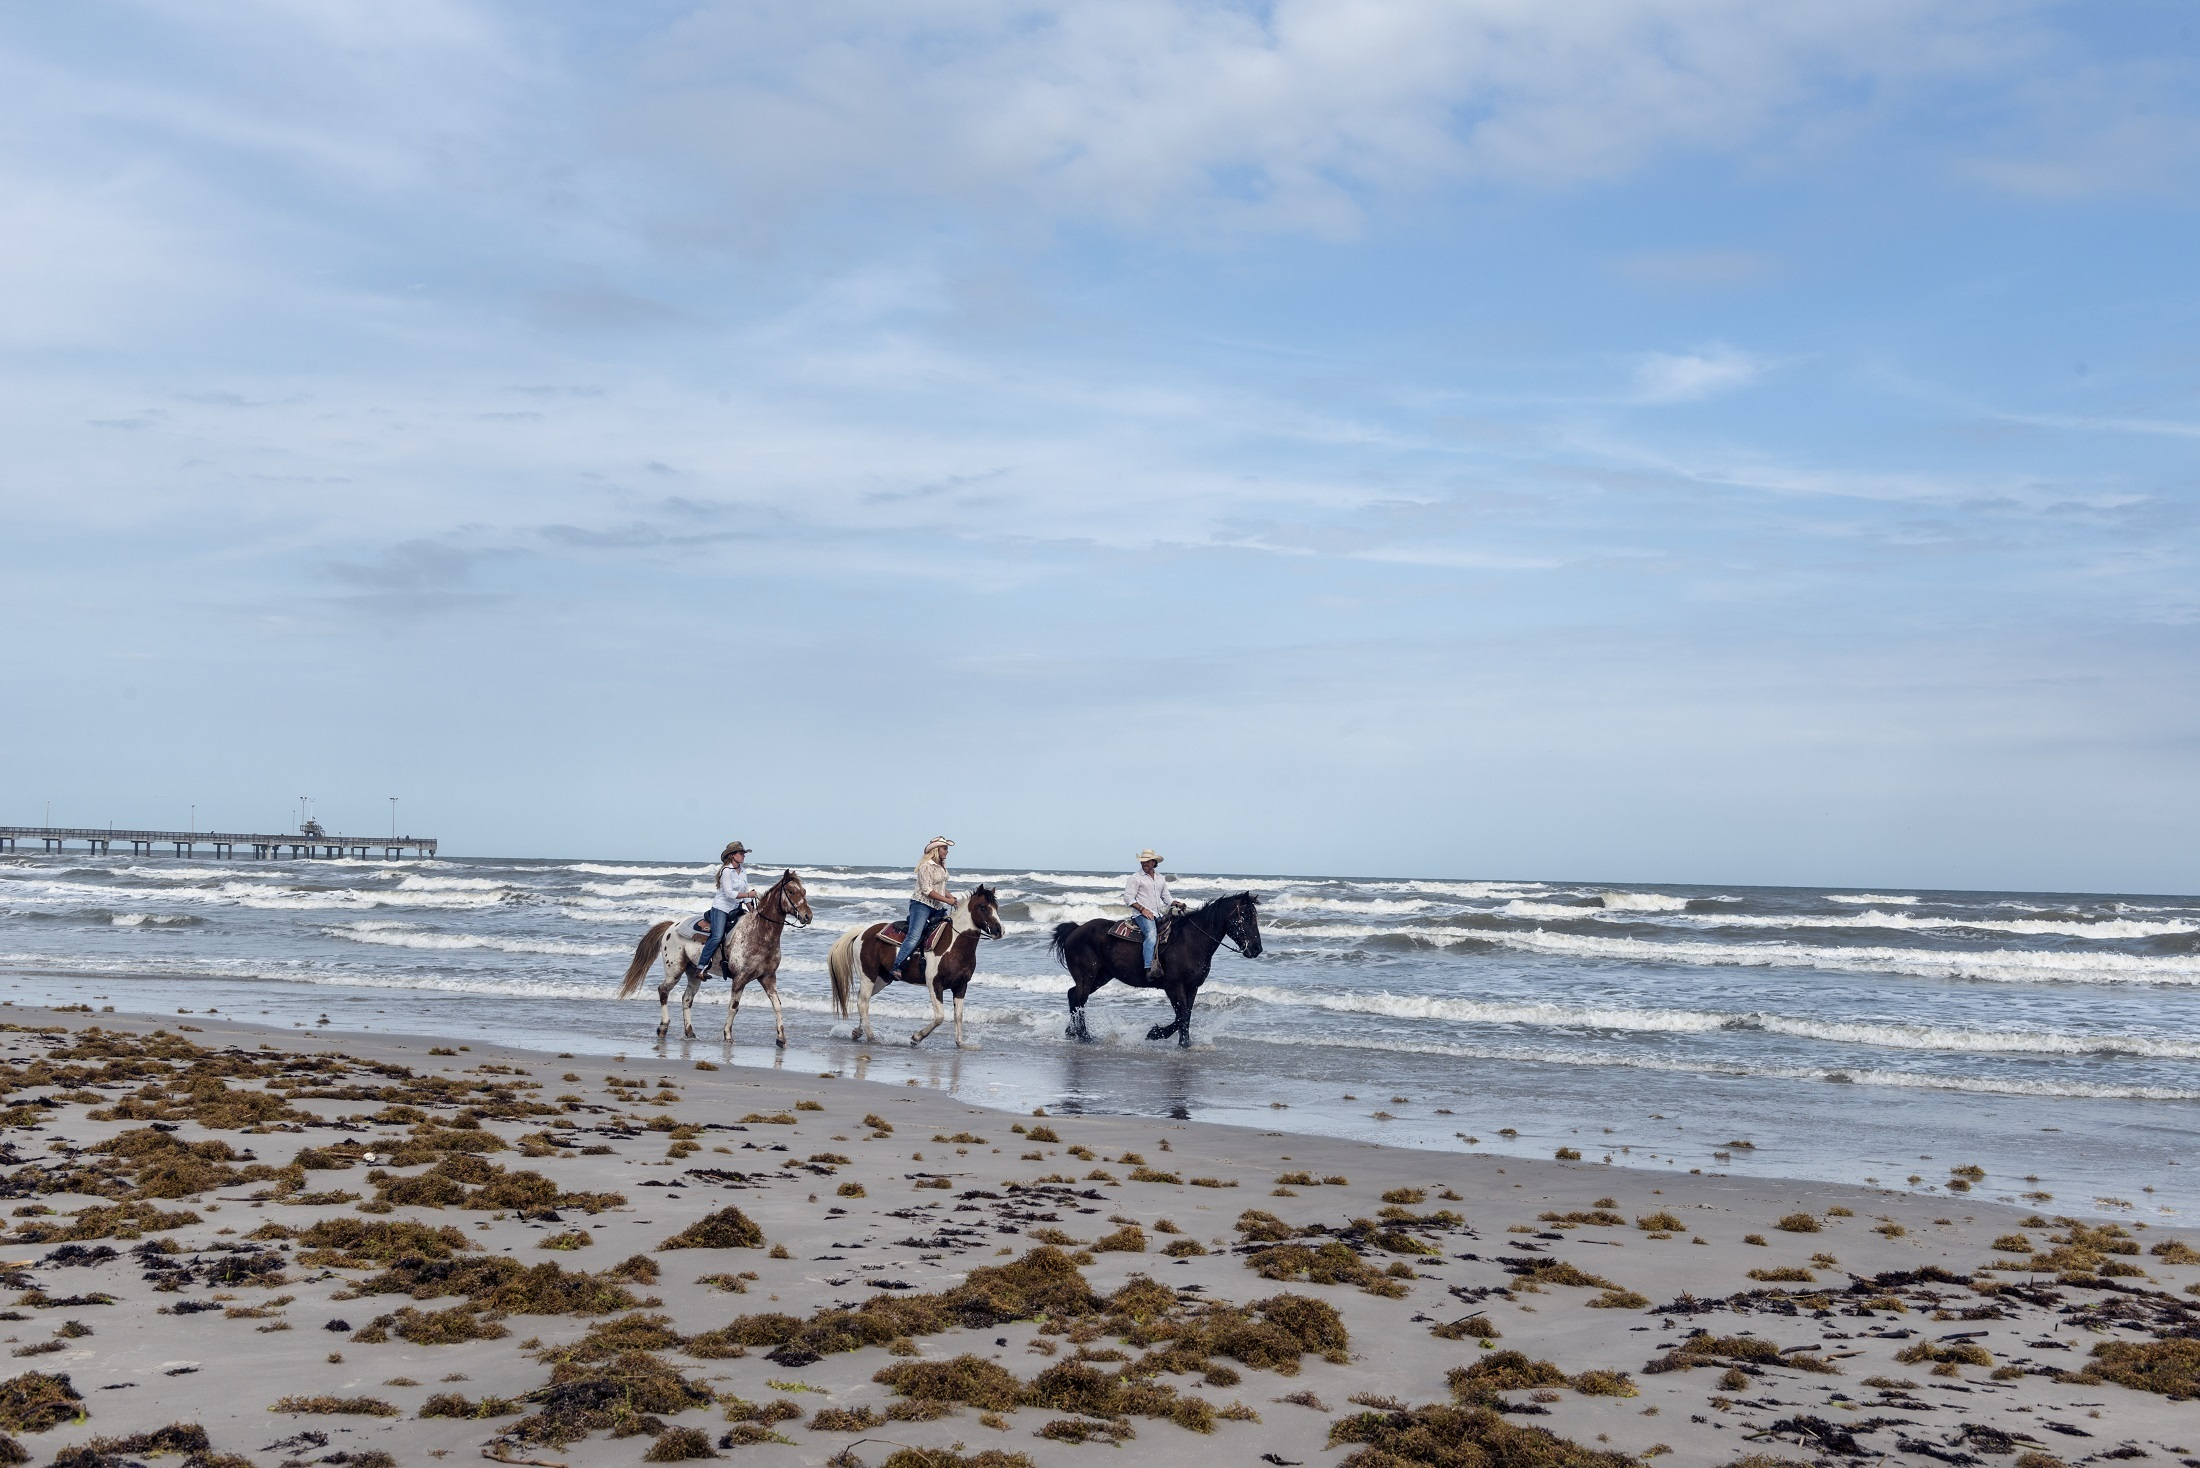 Riding on the Shore, Activity, Beach, Flow, Horse, HQ Photo